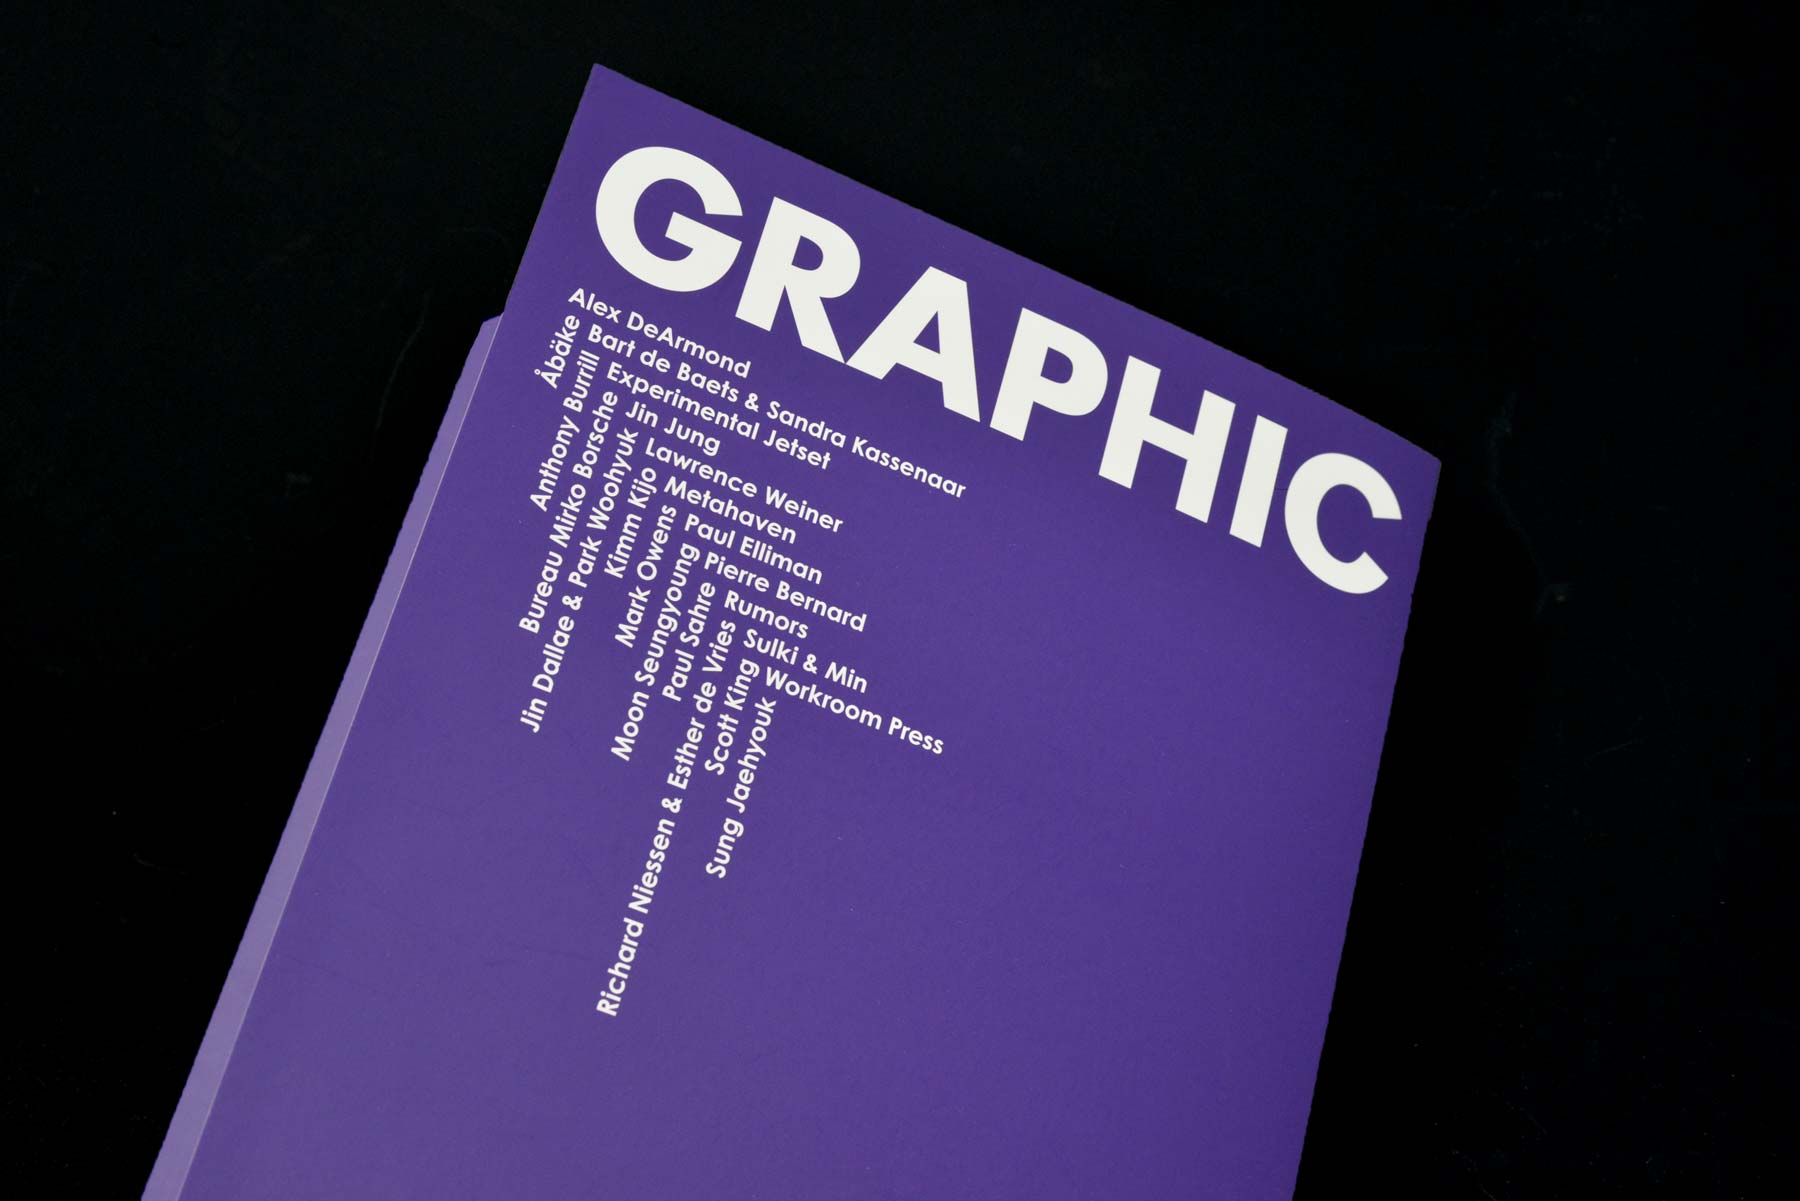 gdfs-library-graphic-posters